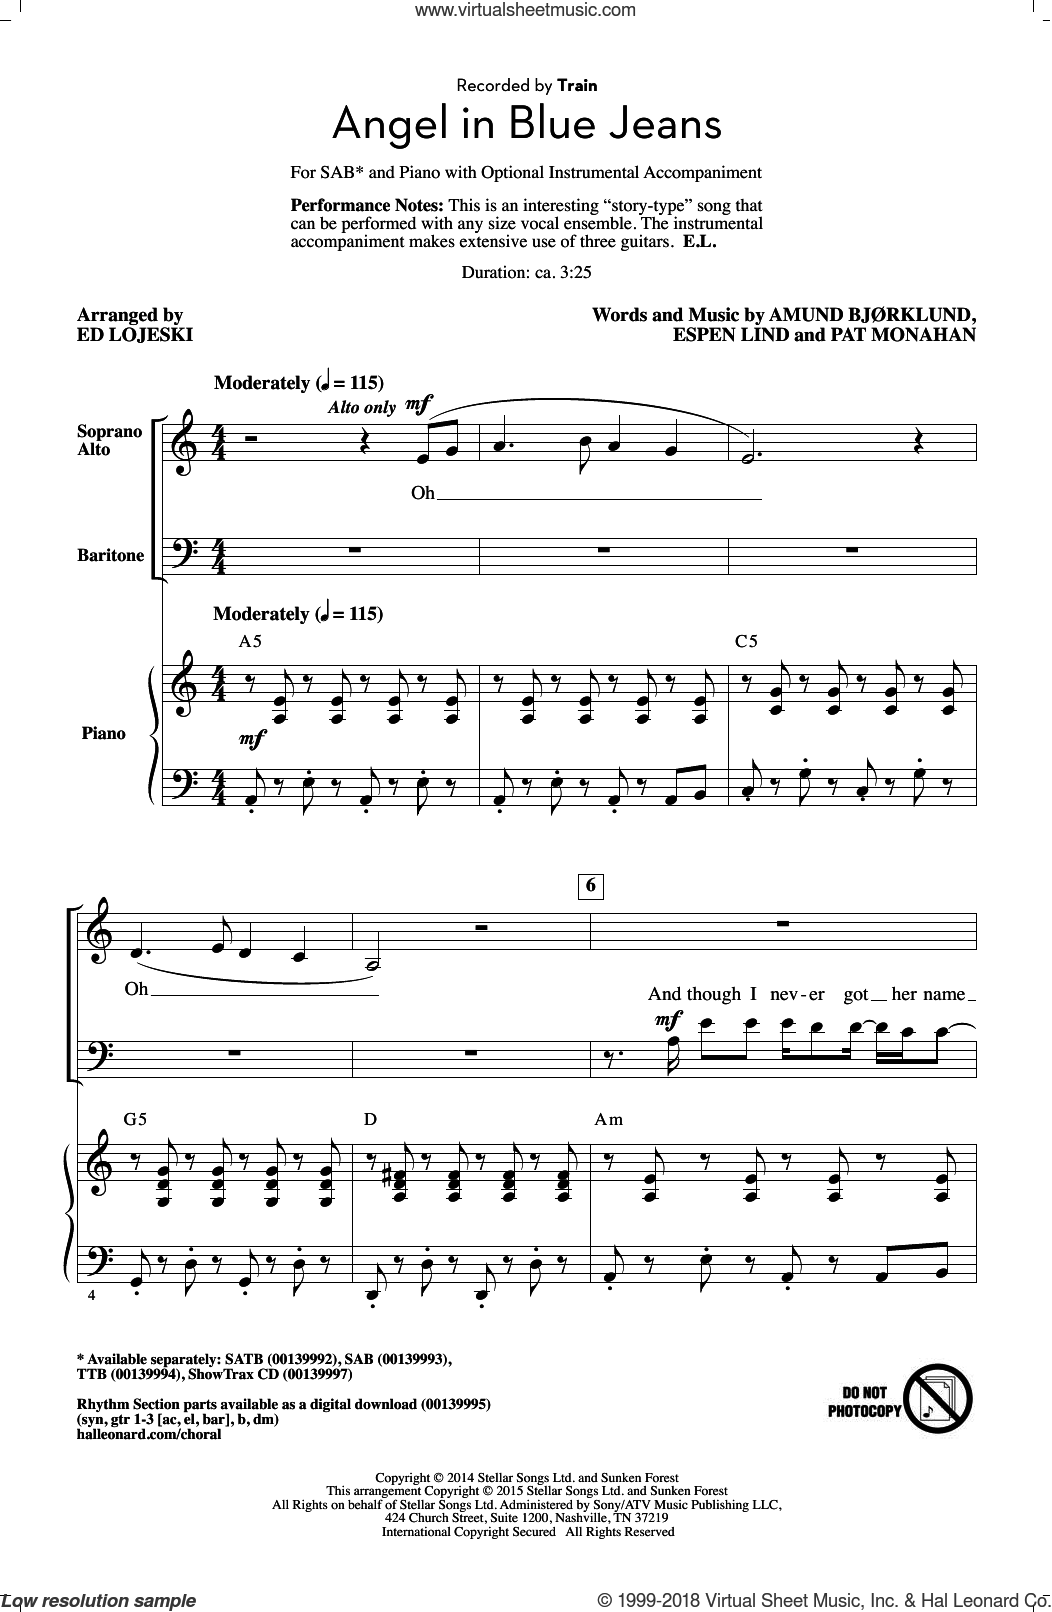 Angel In Blue Jeans sheet music for choir (SAB: soprano, alto, bass) by Ed Lojeski, Train, Amund Bjorklund, Espen Lind and Pat Monahan, intermediate skill level